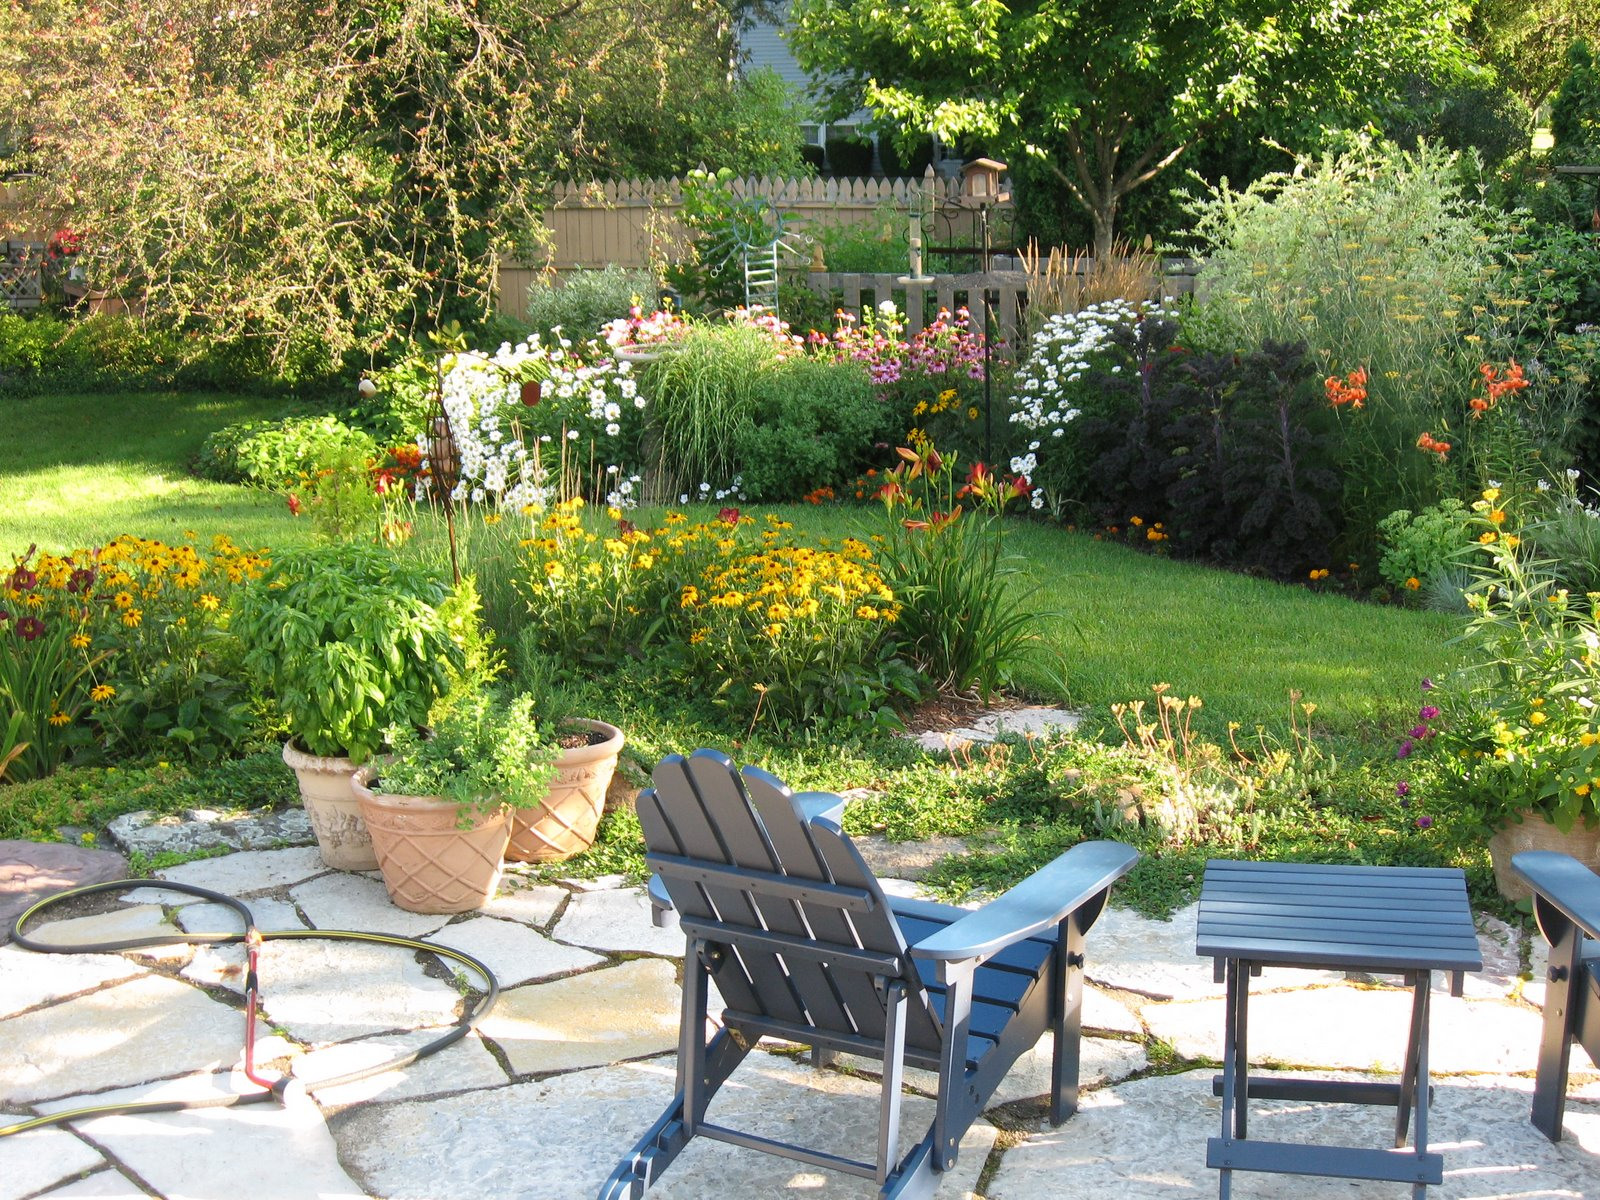 Blog awards linda 39 s yoga journey for Home garden landscape designs